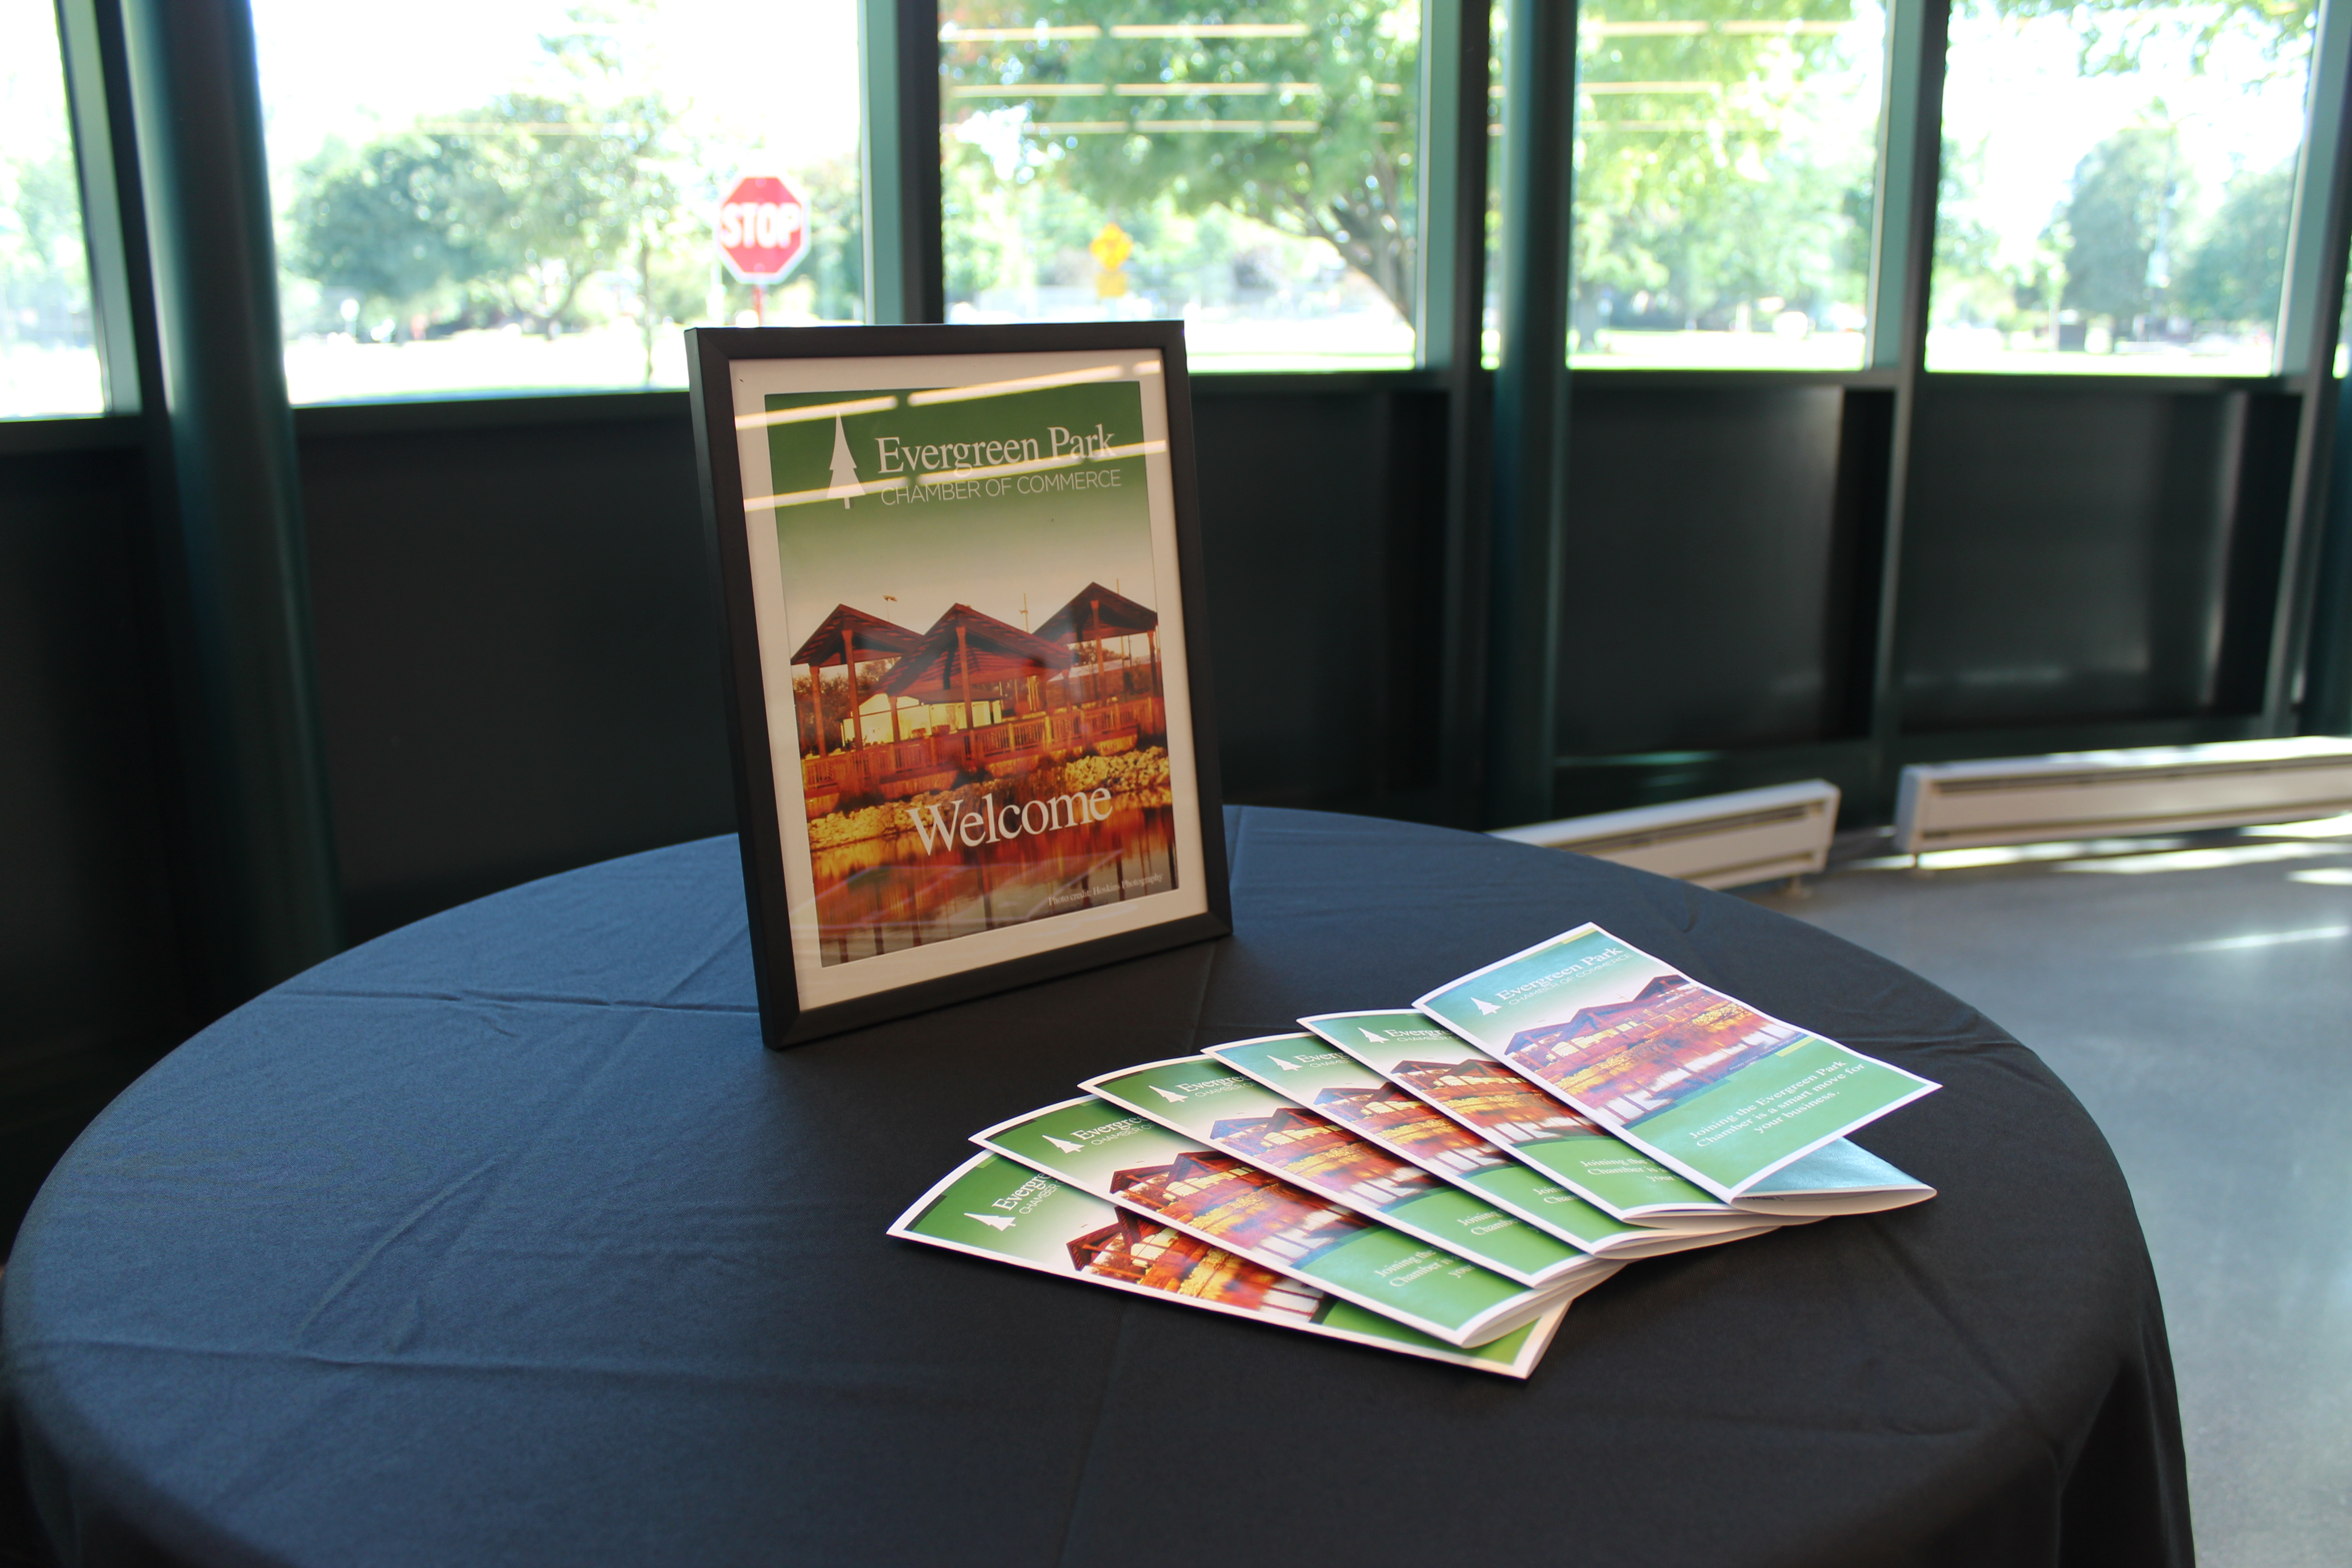 Table with Evergreen Park Chamber of Commerce membership pamphlets and Welcome sign